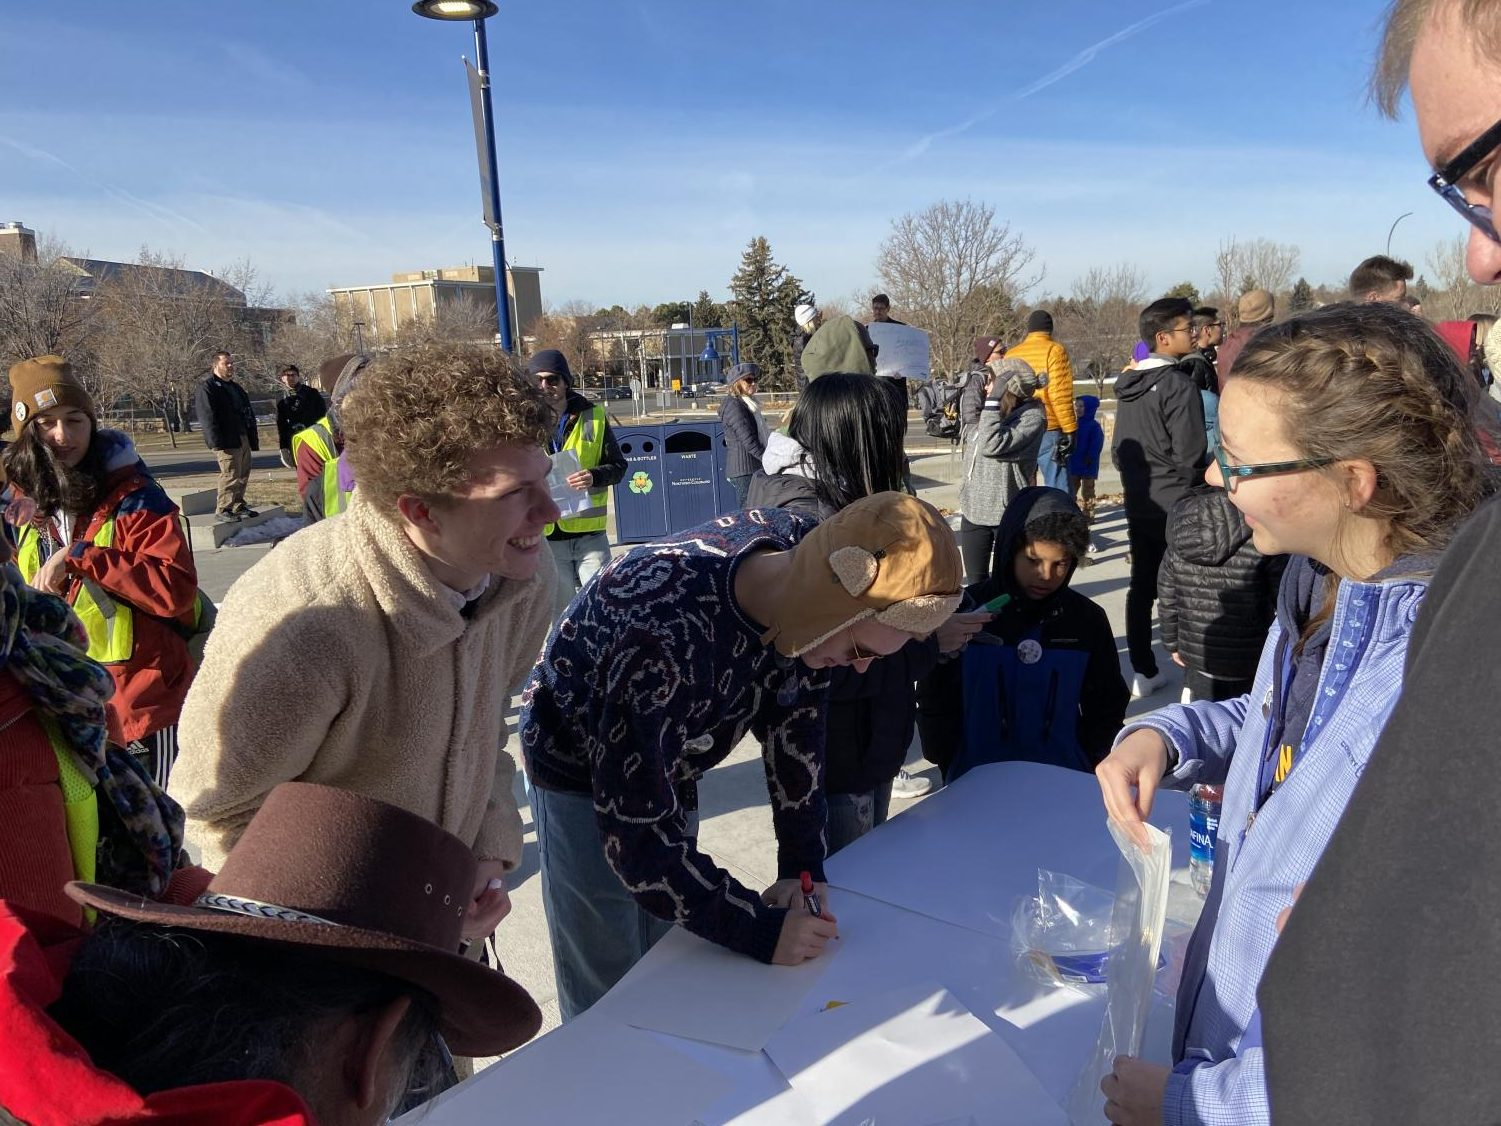 Jacob Evans and Brendan McCune make signs before the Martin Luther King march on Monday at the University of Northern Colorado.